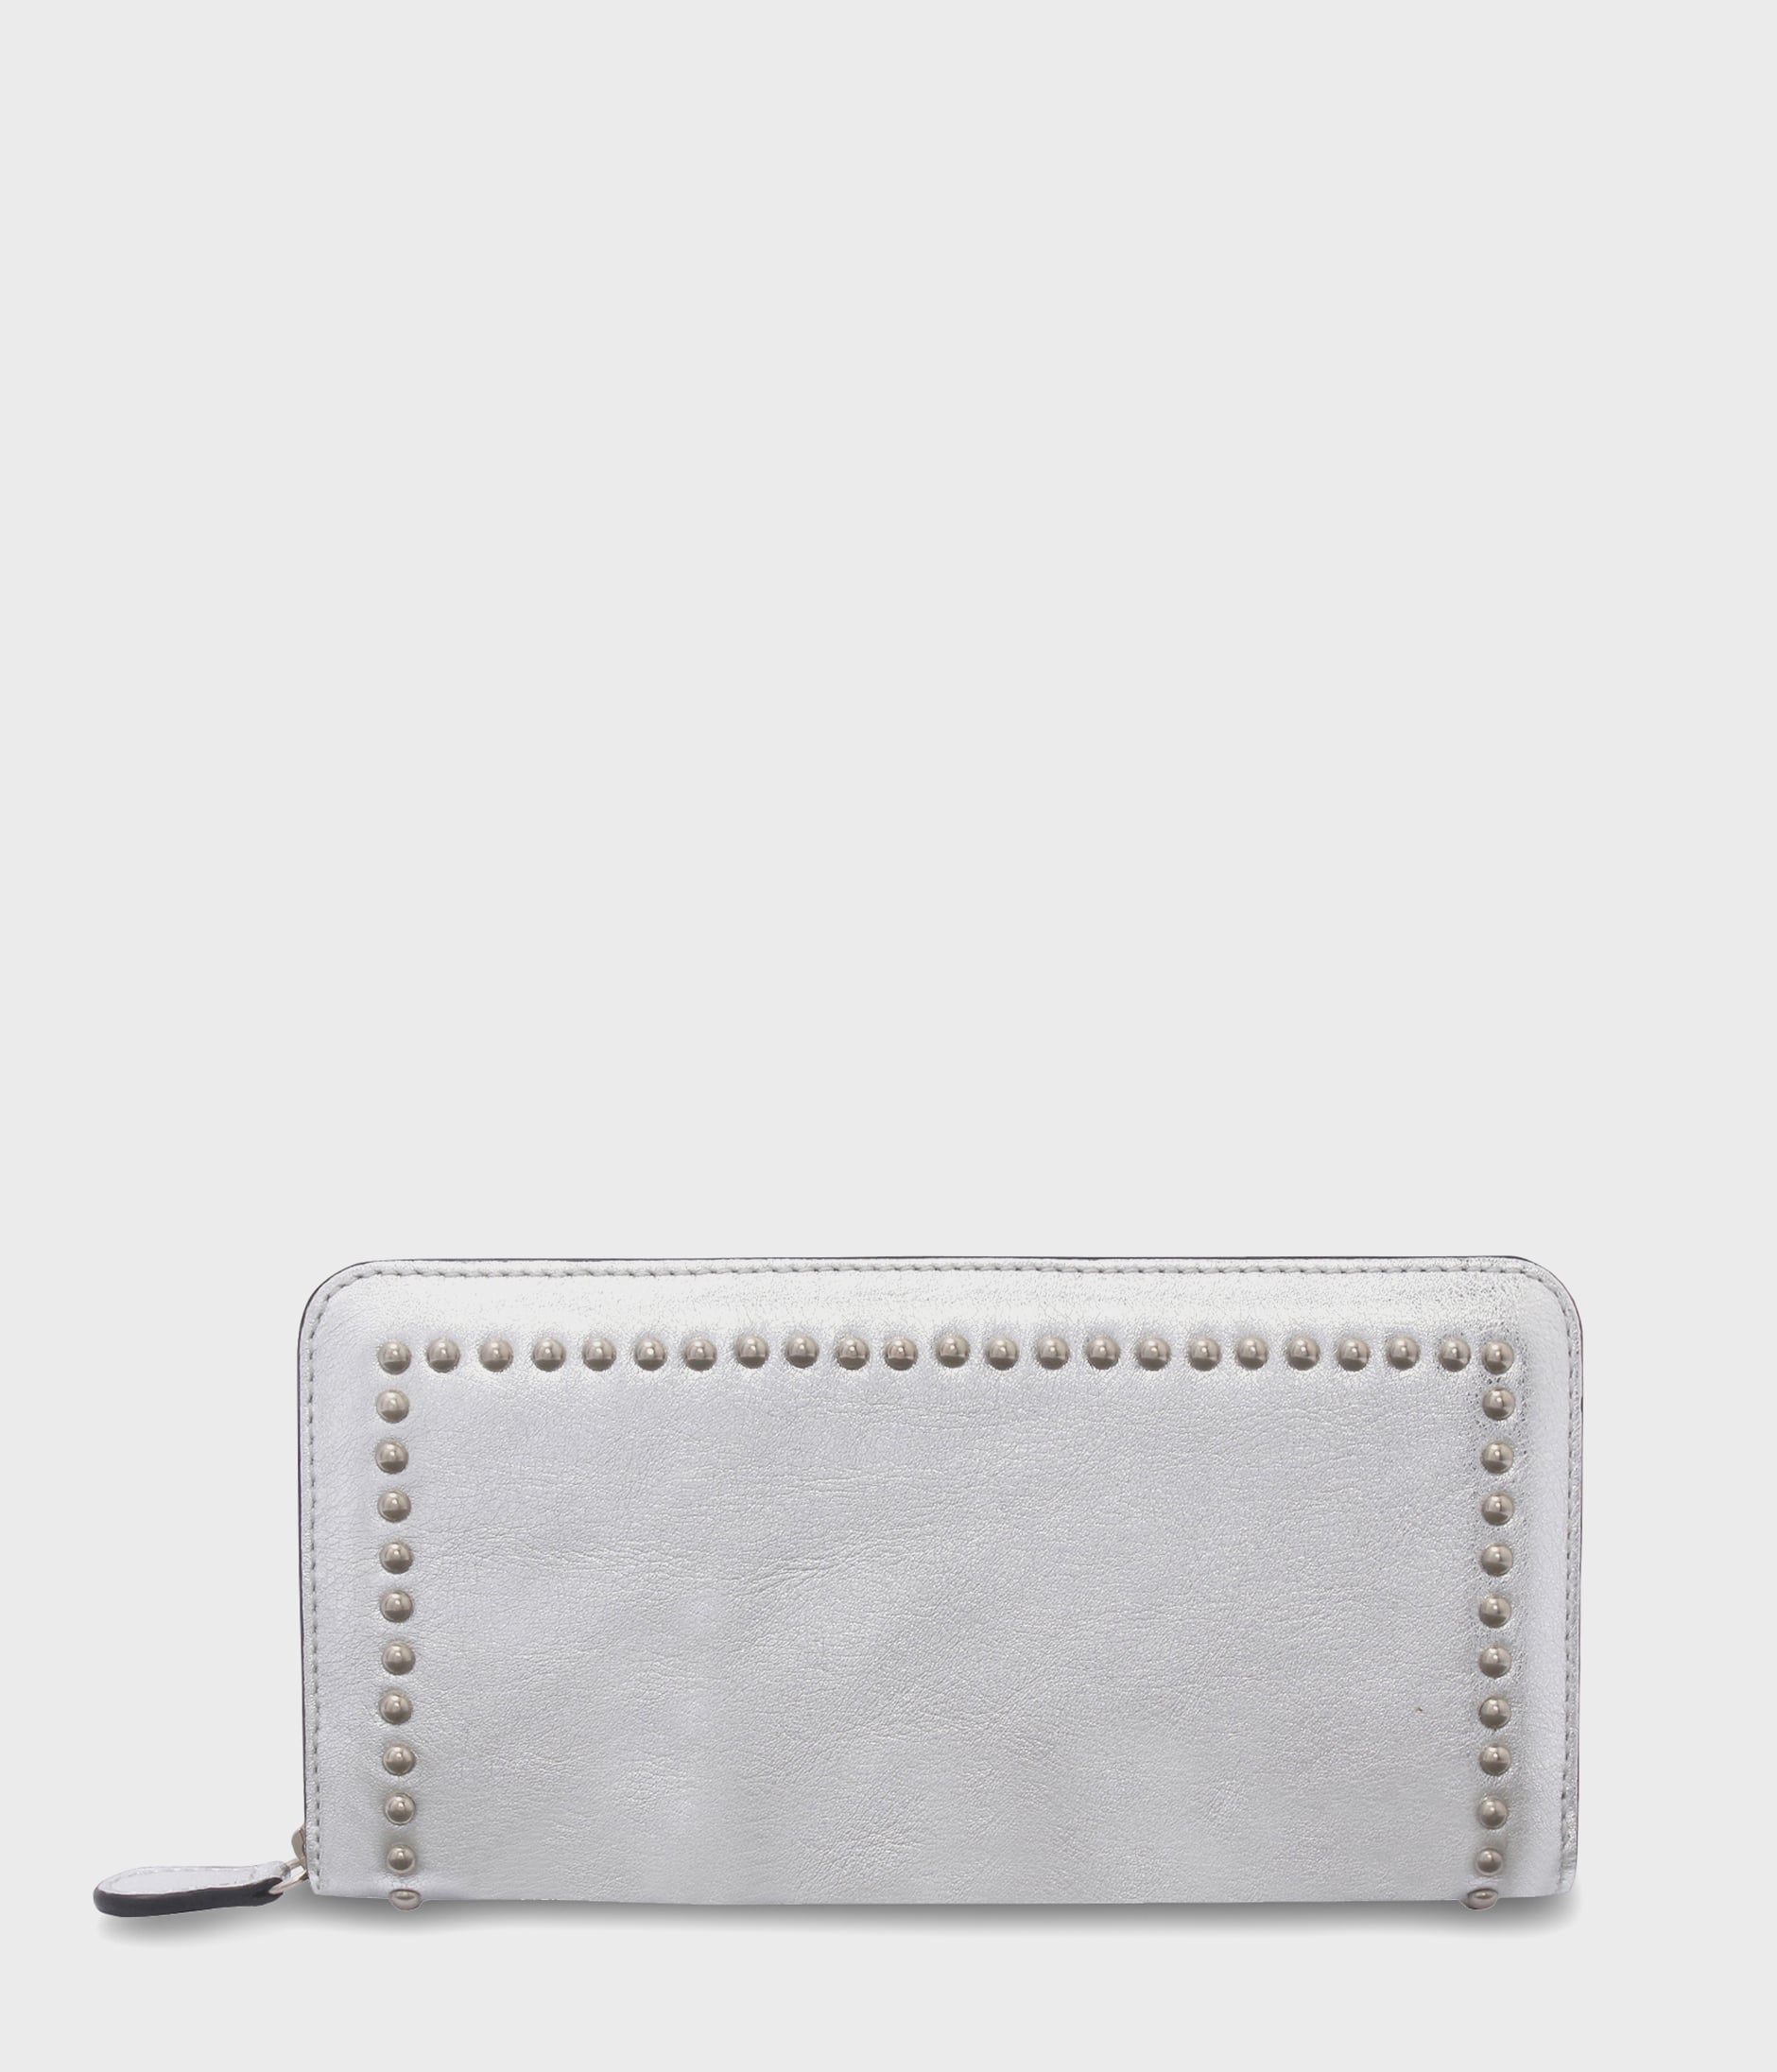 ELONGATED ZIP WALLET WITH STUDS 詳細画像 SILVER 1